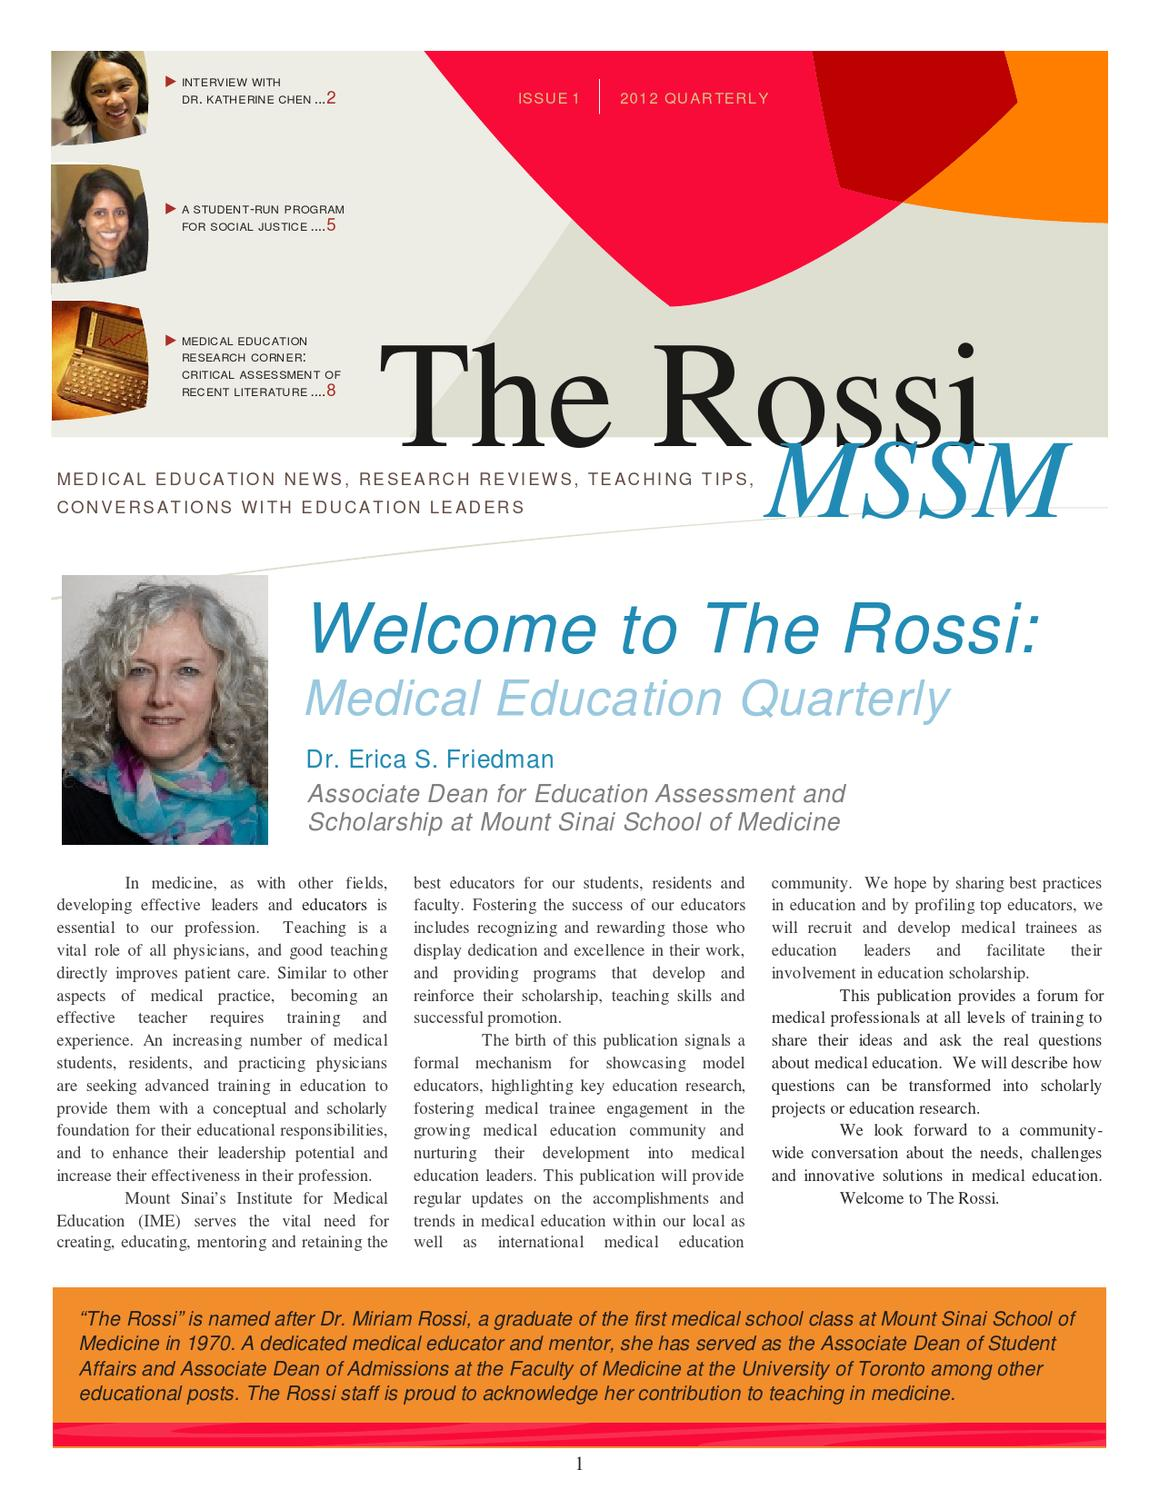 The Rossi: Medical Education Quarterly Newsletter by Mount